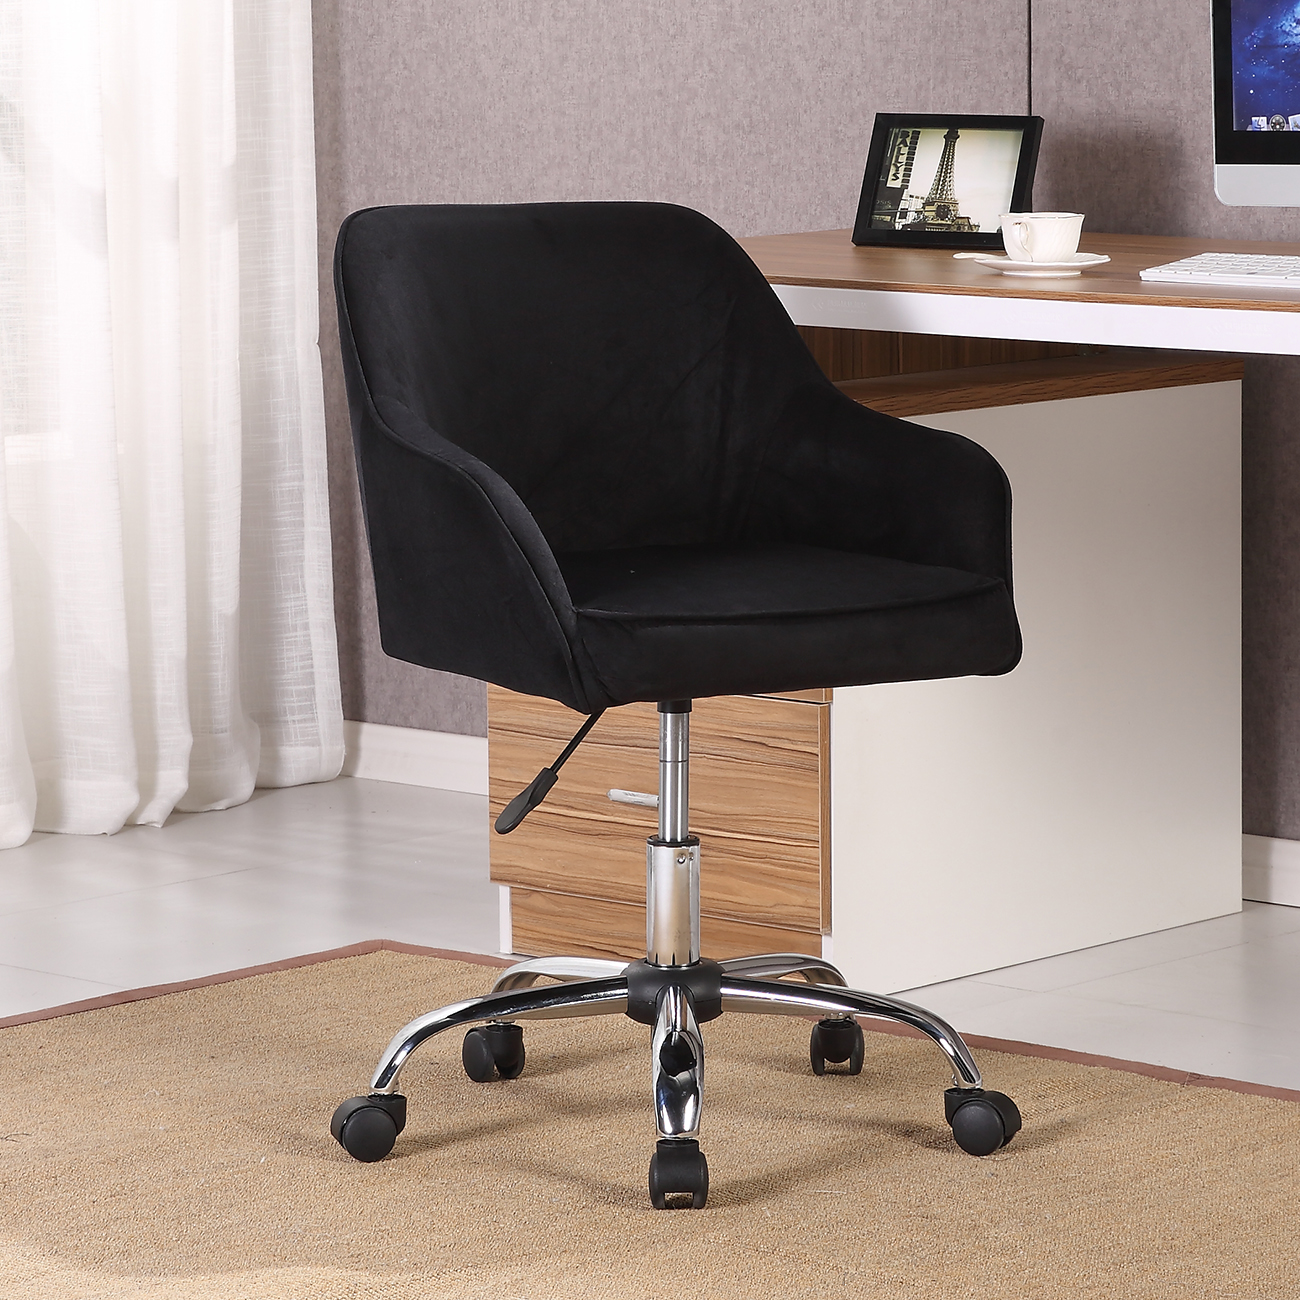 Swivel Desk Chairs Modern Office Chair Task Desk Adjustable Swivel Height W